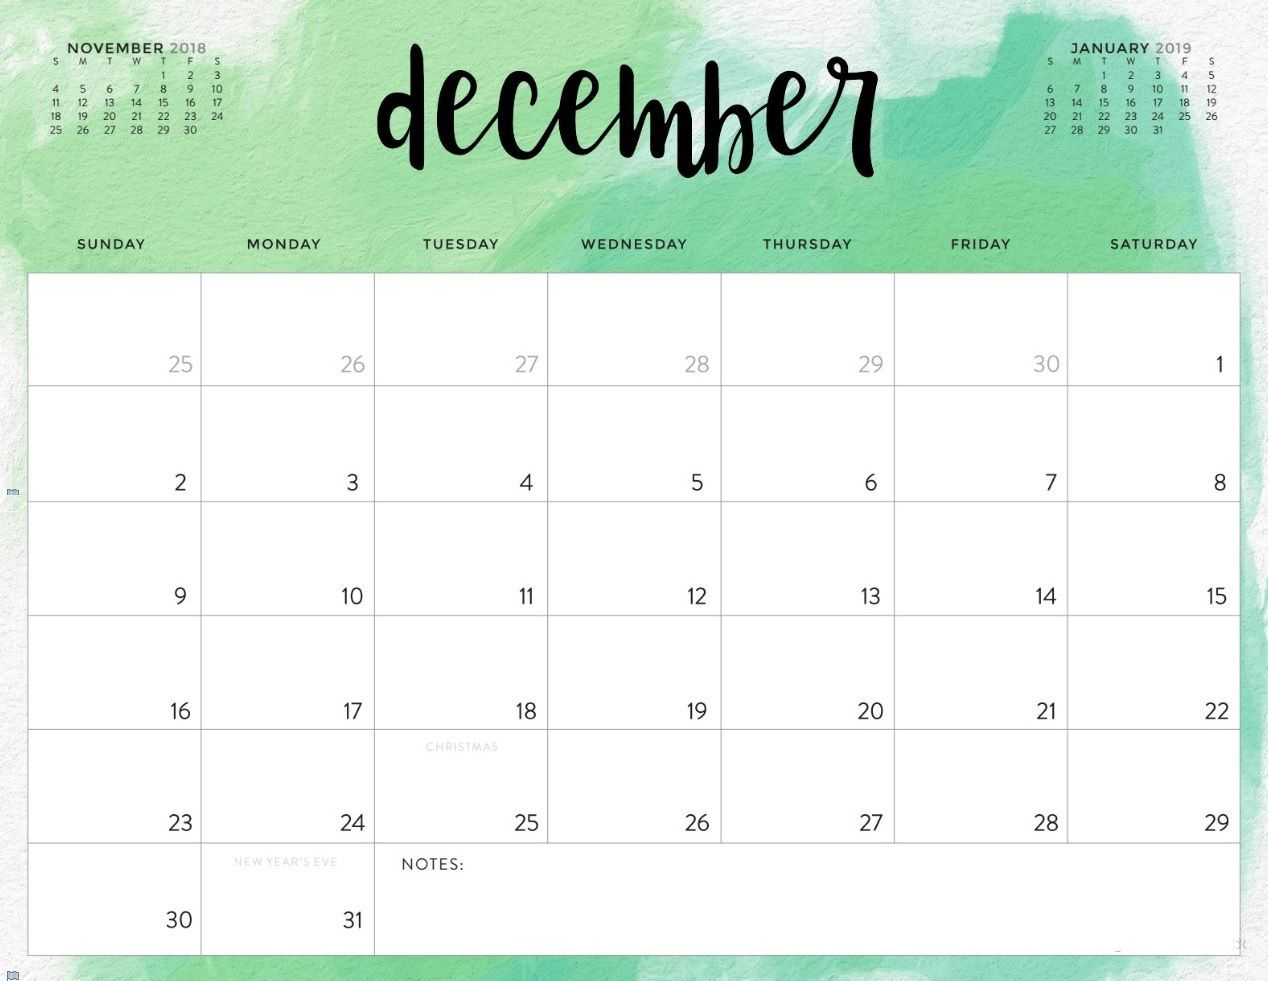 image about Printable December Calendar named December 2018 Calendar United kingdom Printable #UKCalendar